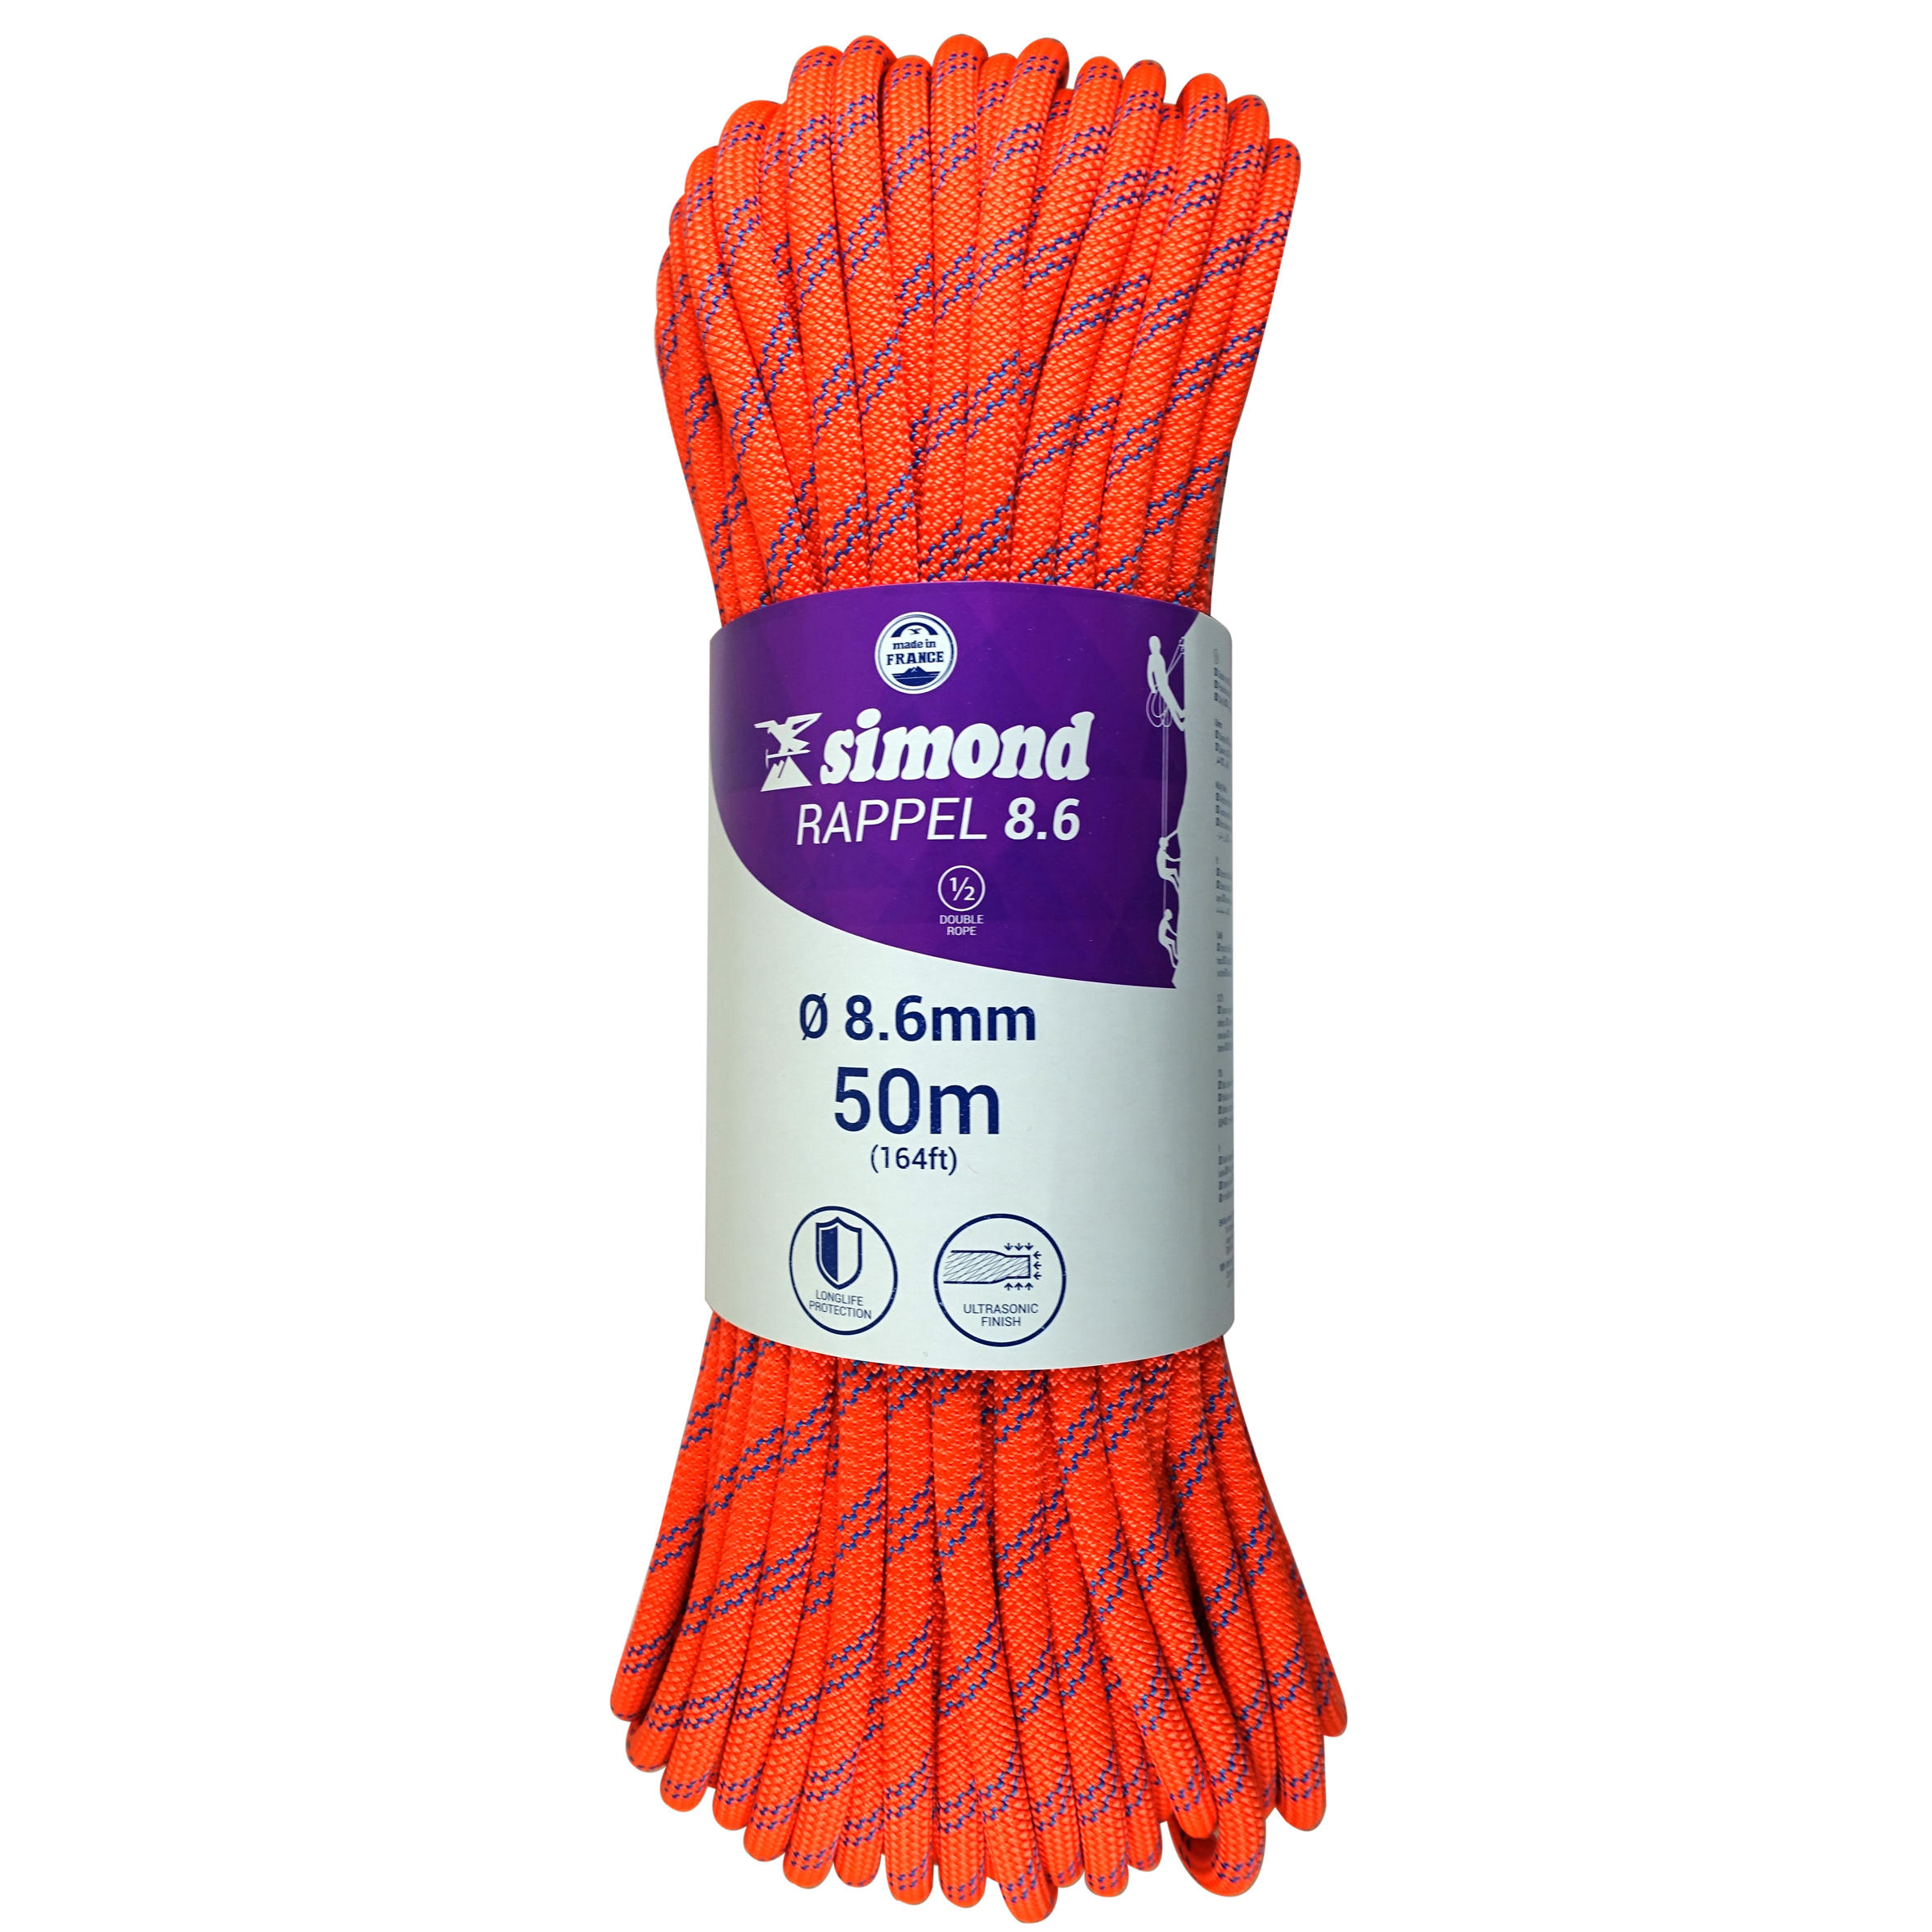 Rappelling Rock Climbing Half Rope - Orange 8.6 mm x 50 m